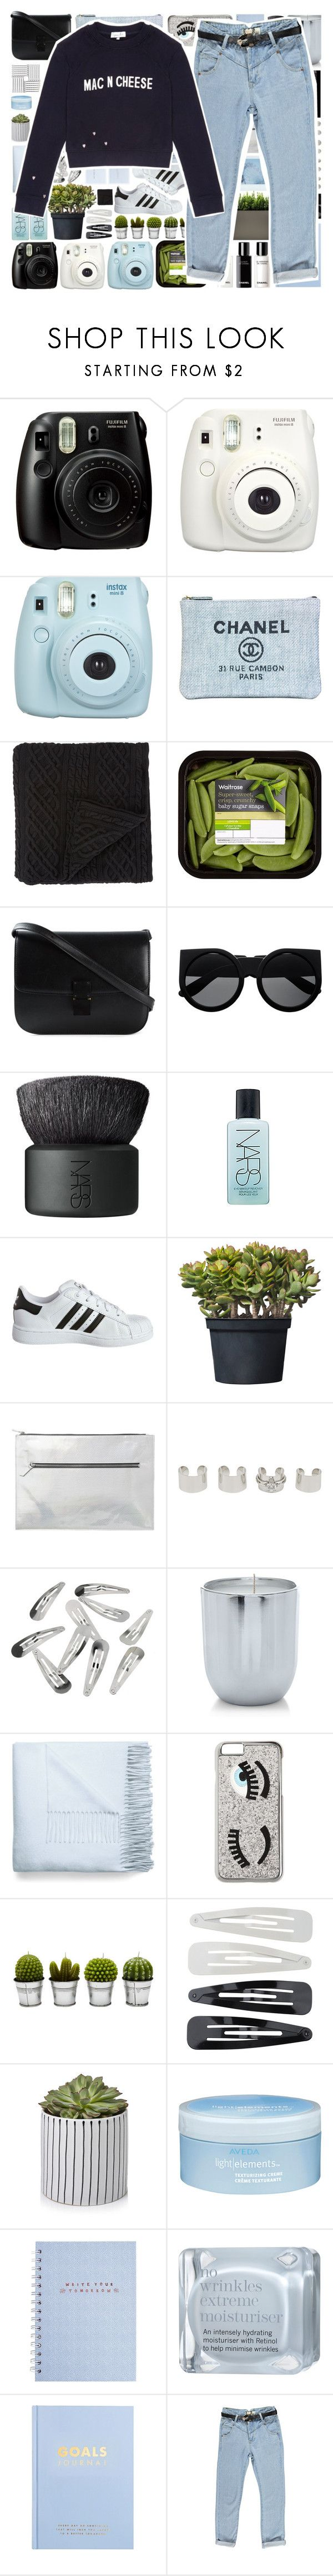 """Mac N Cheese"" by stelbell ❤ liked on Polyvore featuring Fujifilm, Chanel, Morgan Collection, CÉLINE, NARS Cosmetics, adidas Originals, Monki, Maison Margiela, Acne Studios and Chiara Ferragni"